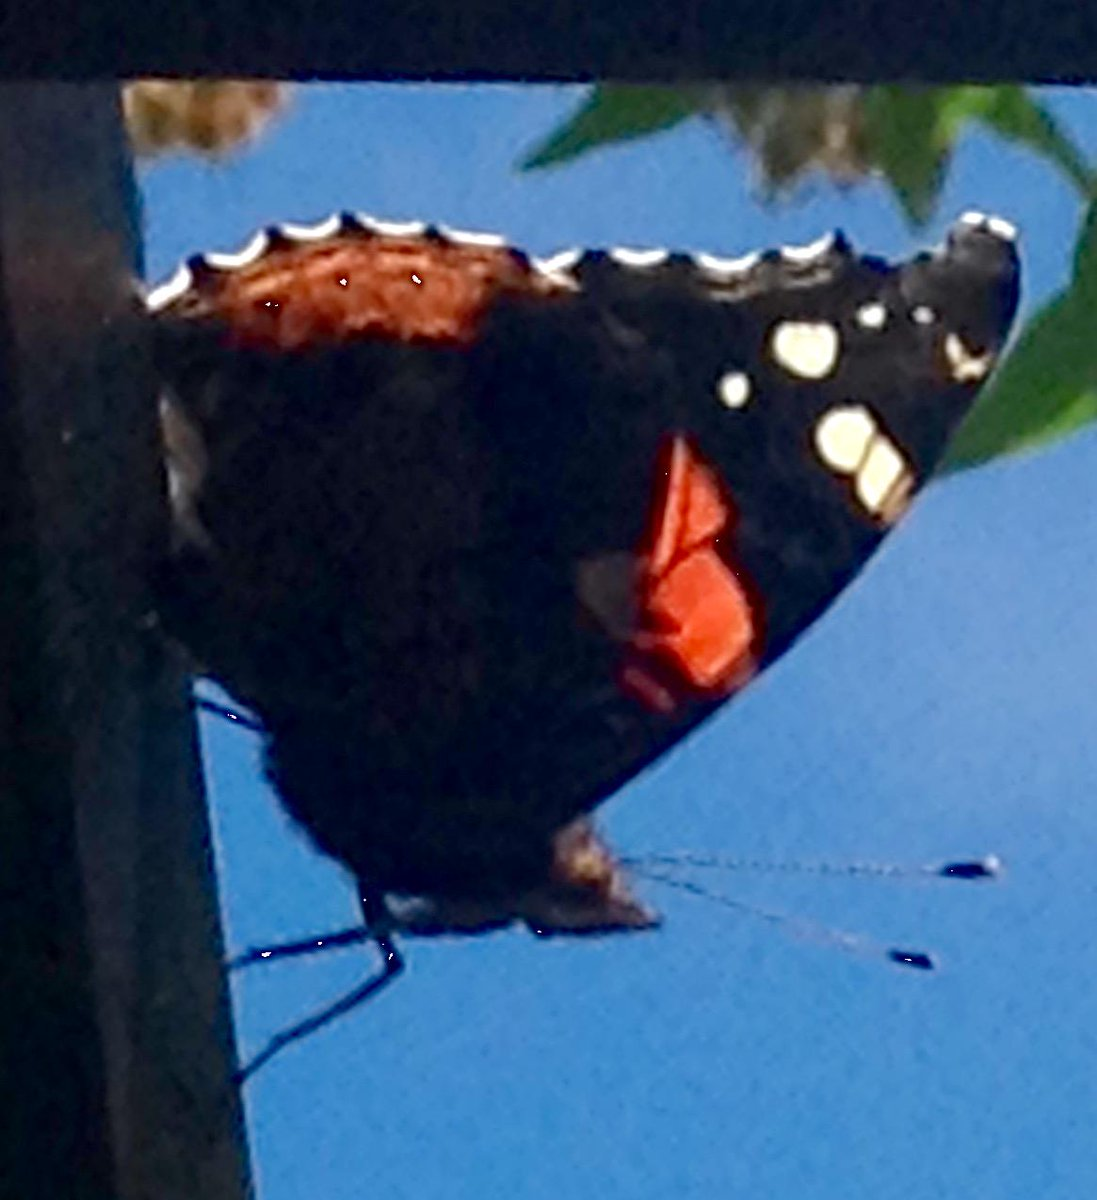 black, orange and white butterfly in foreground against blue sky